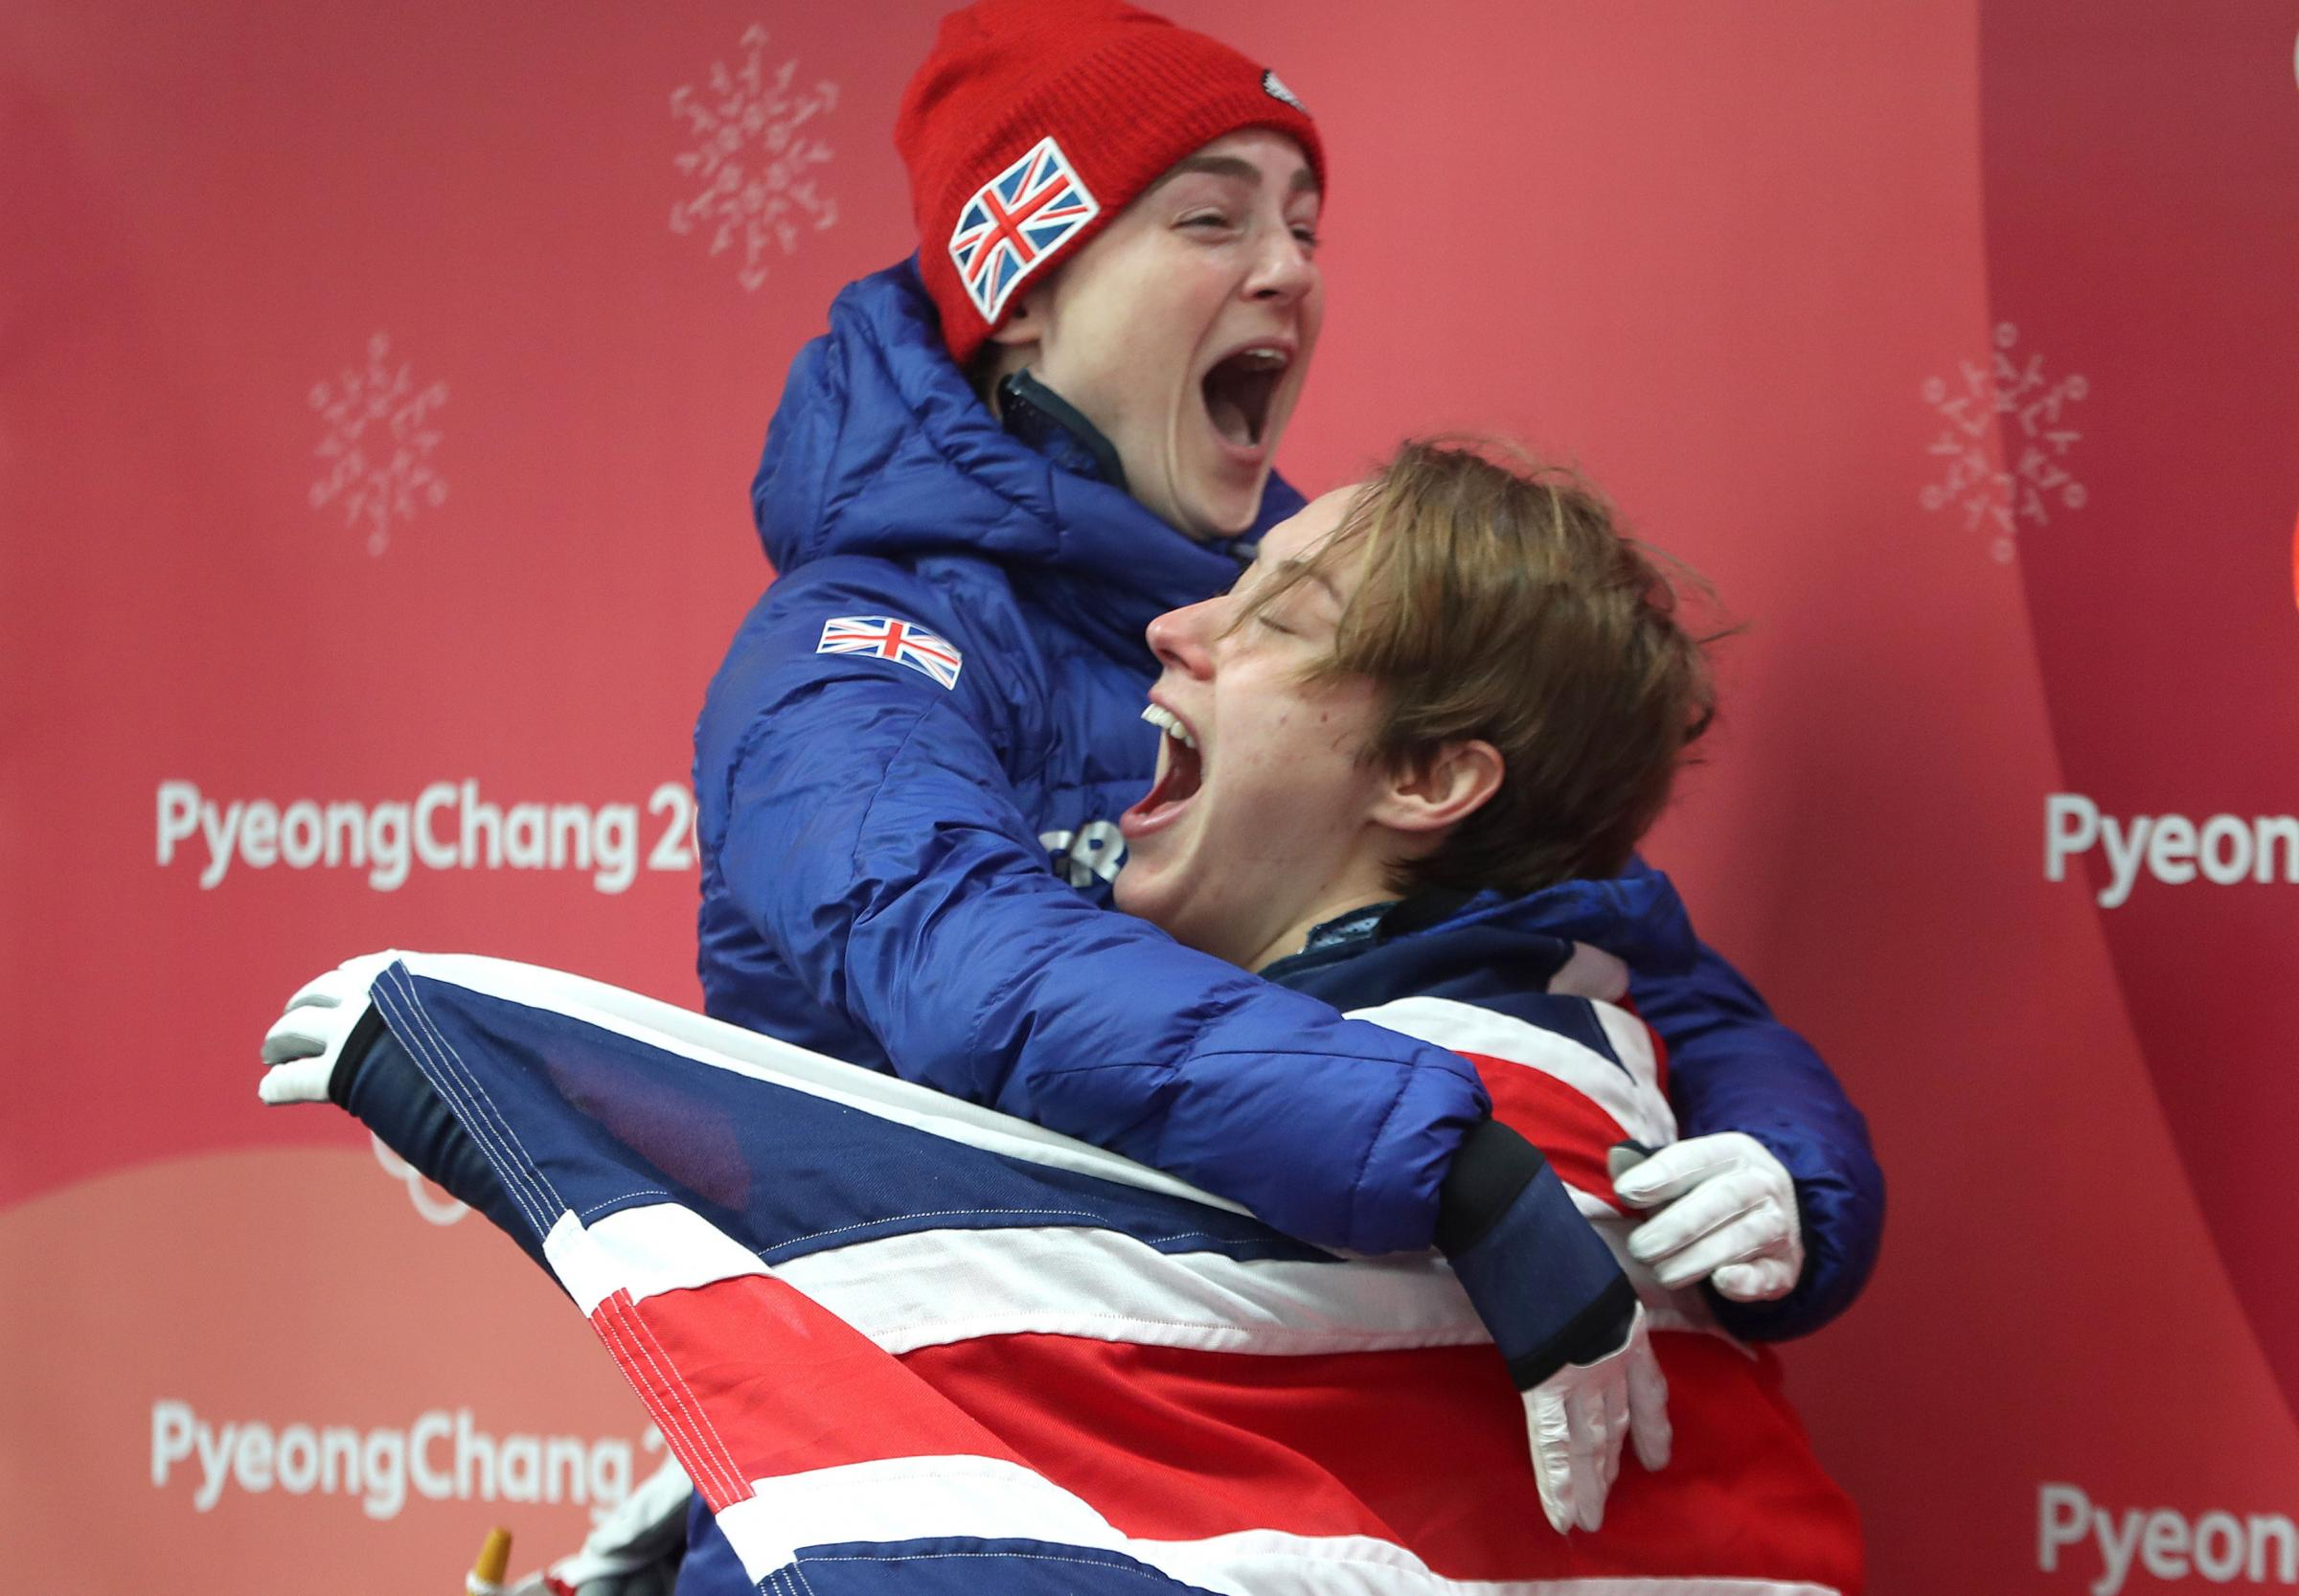 Laura Deas (left) celebrates with gold medalist Lizzy Yarnold